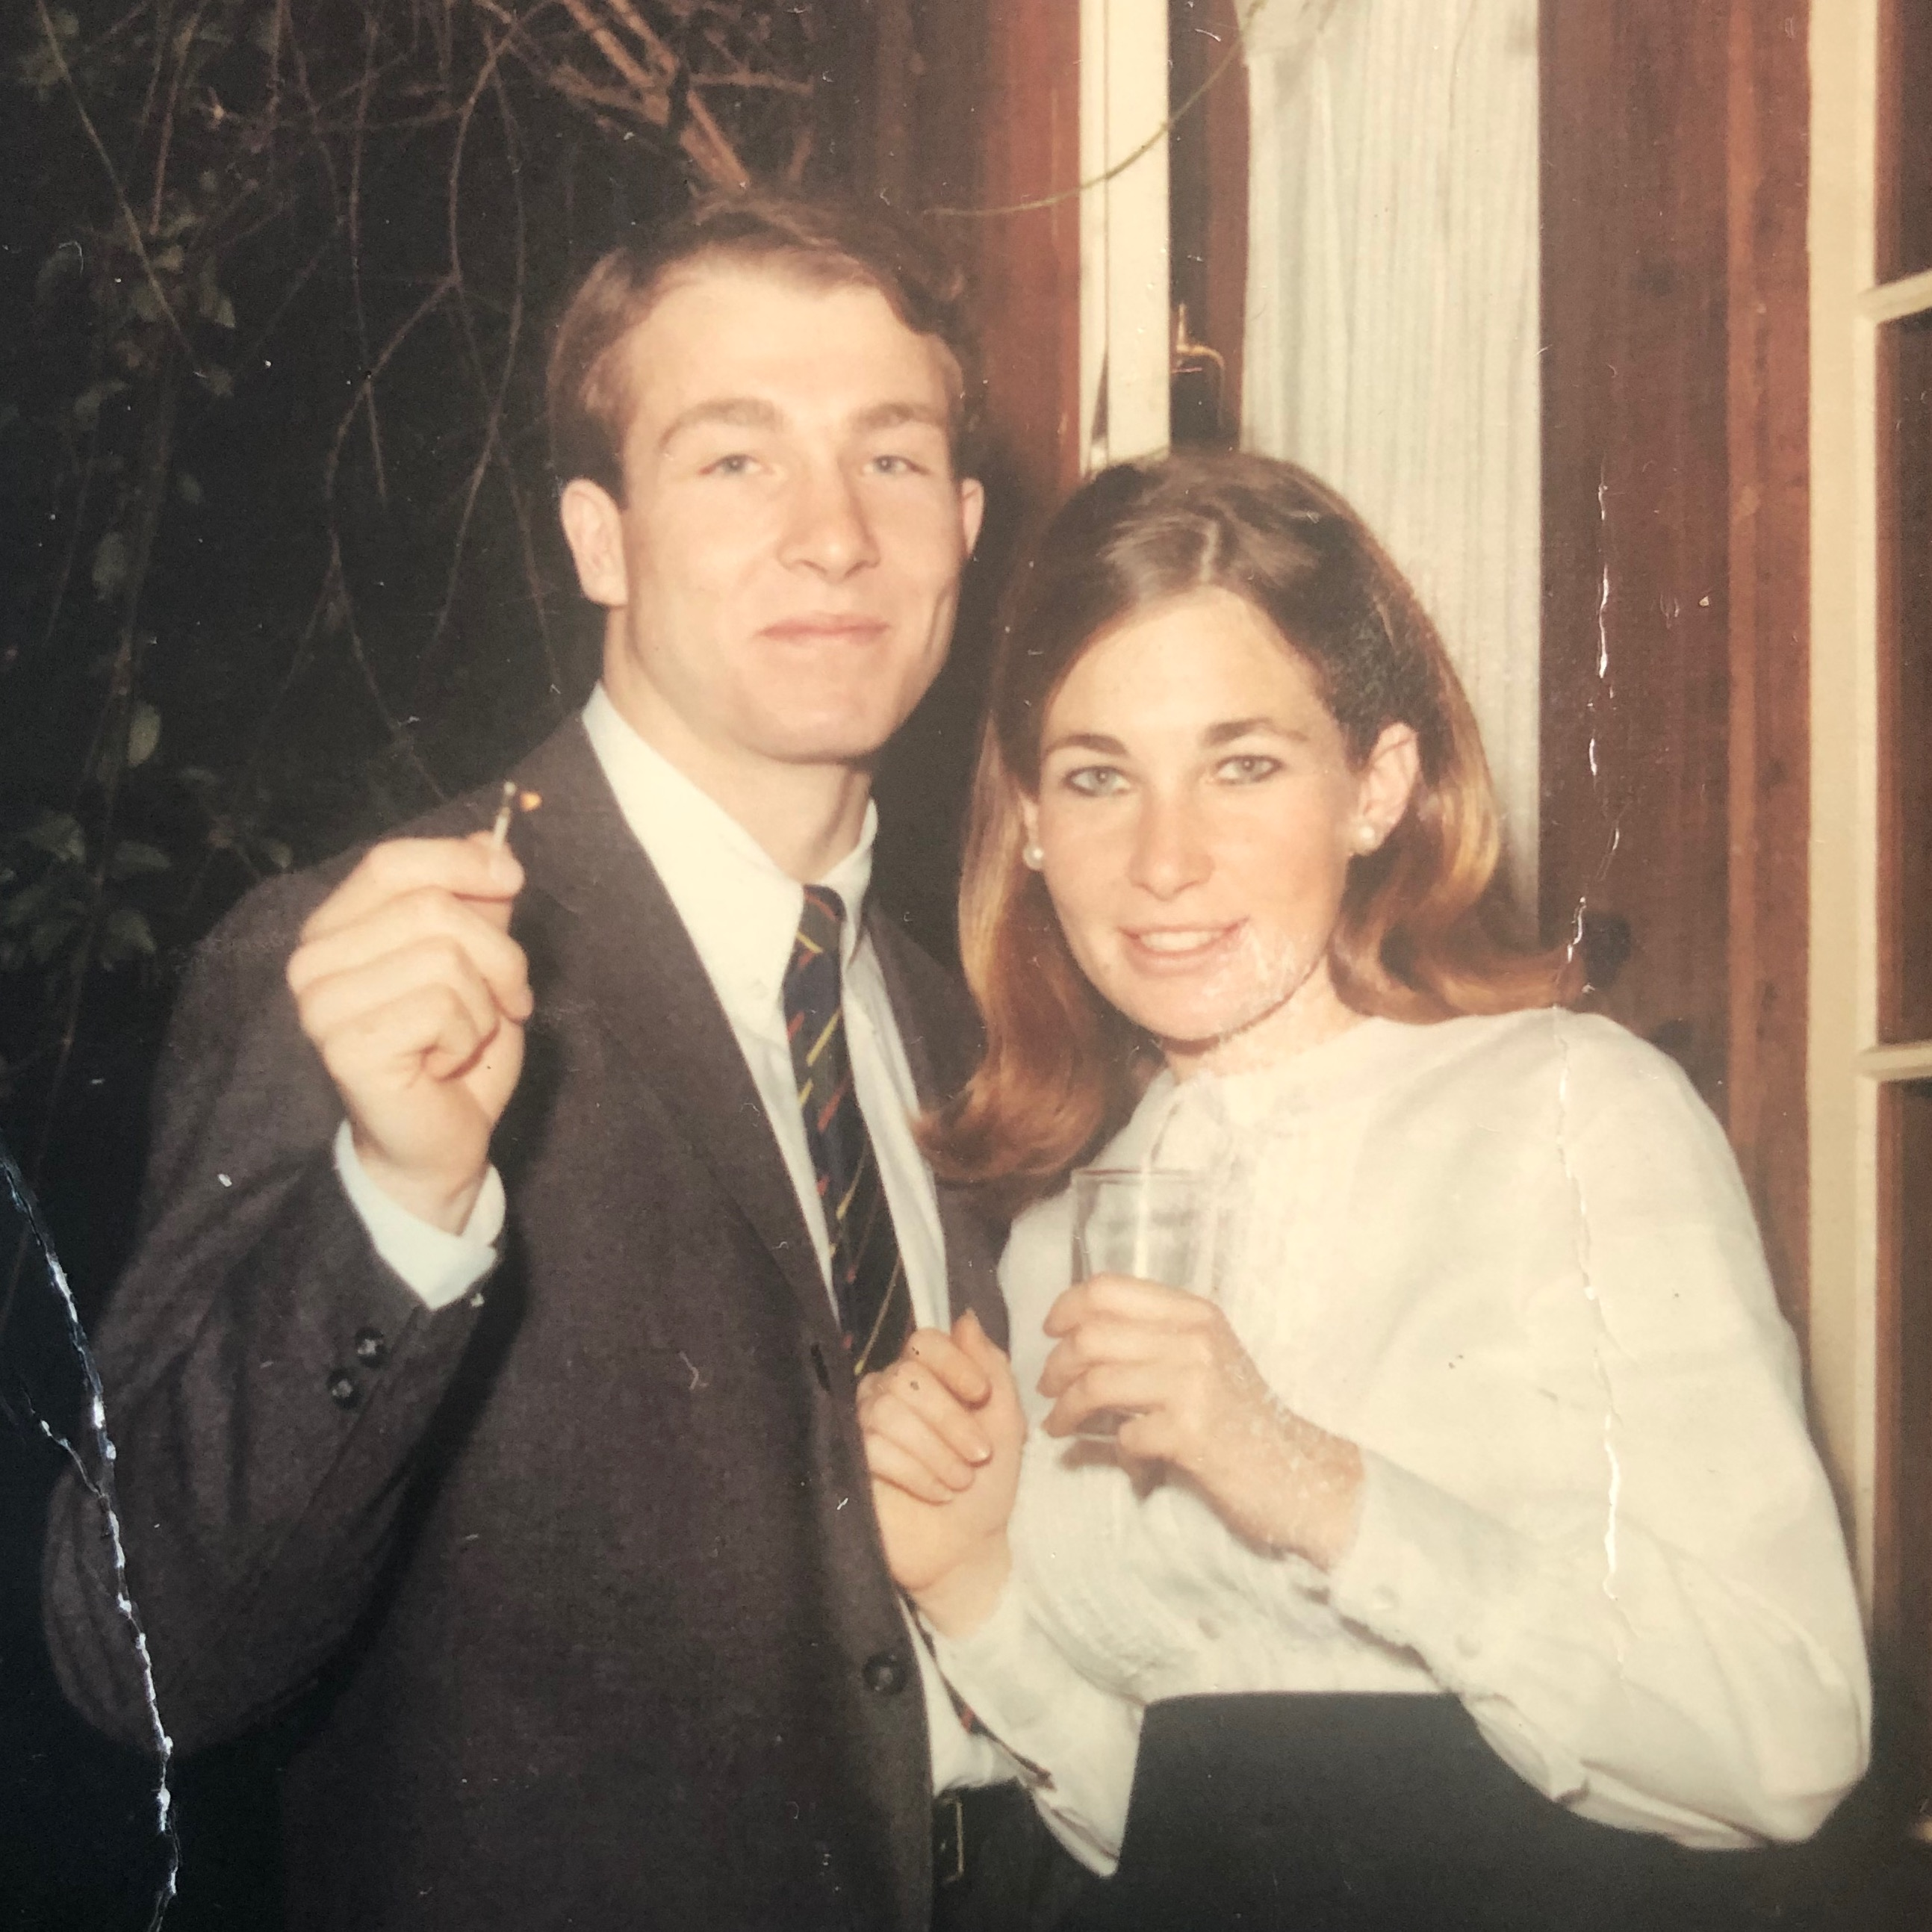 Photo of John in a coat and tie and Vandy in a white top. He has his arm around her and they are smiling.